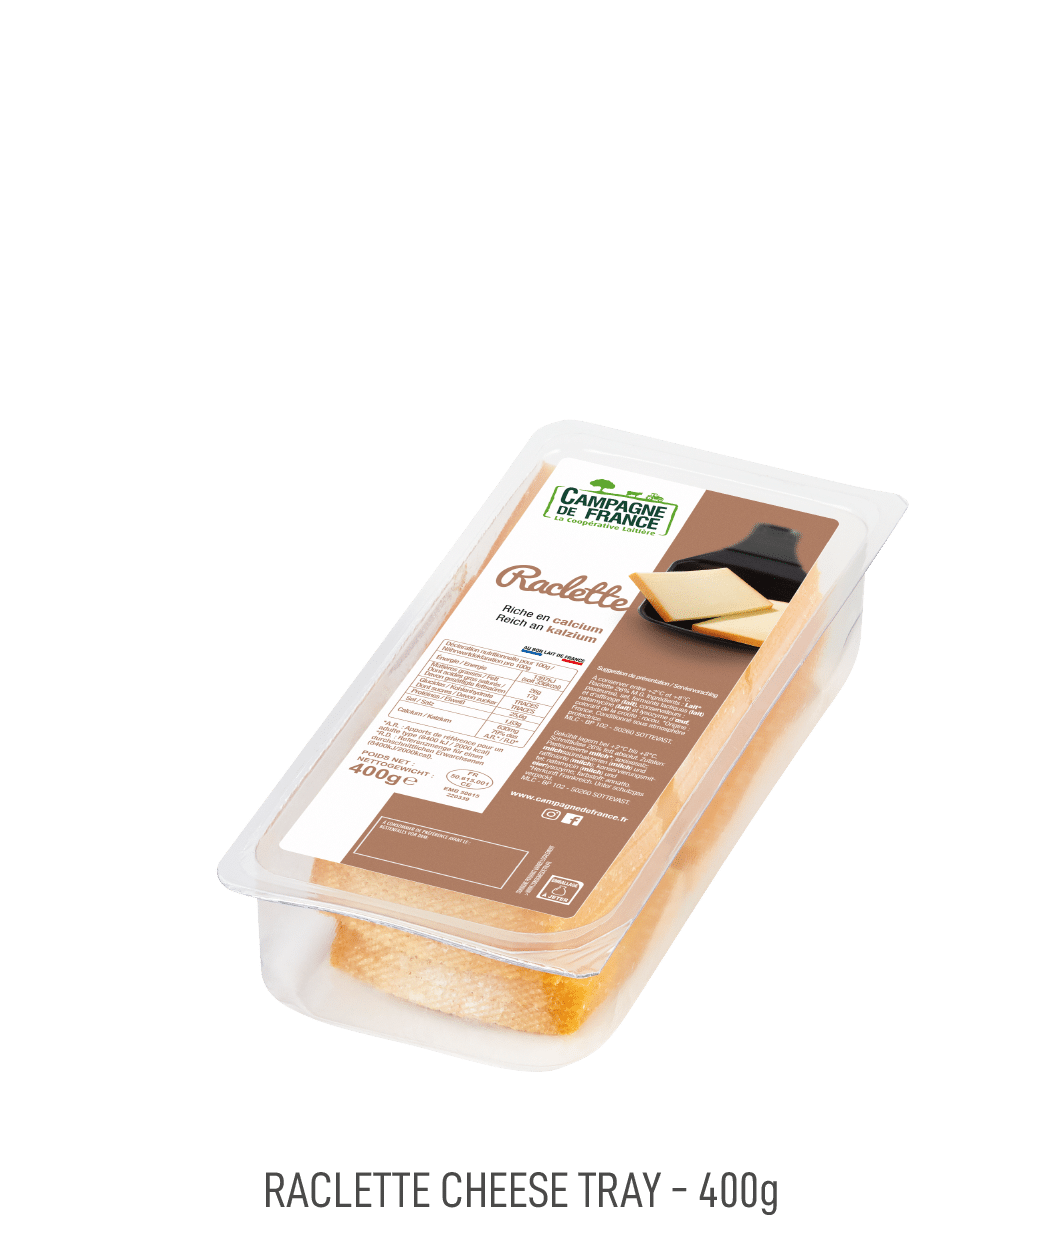 Fromage Raclette Campagne de France barquette 400g